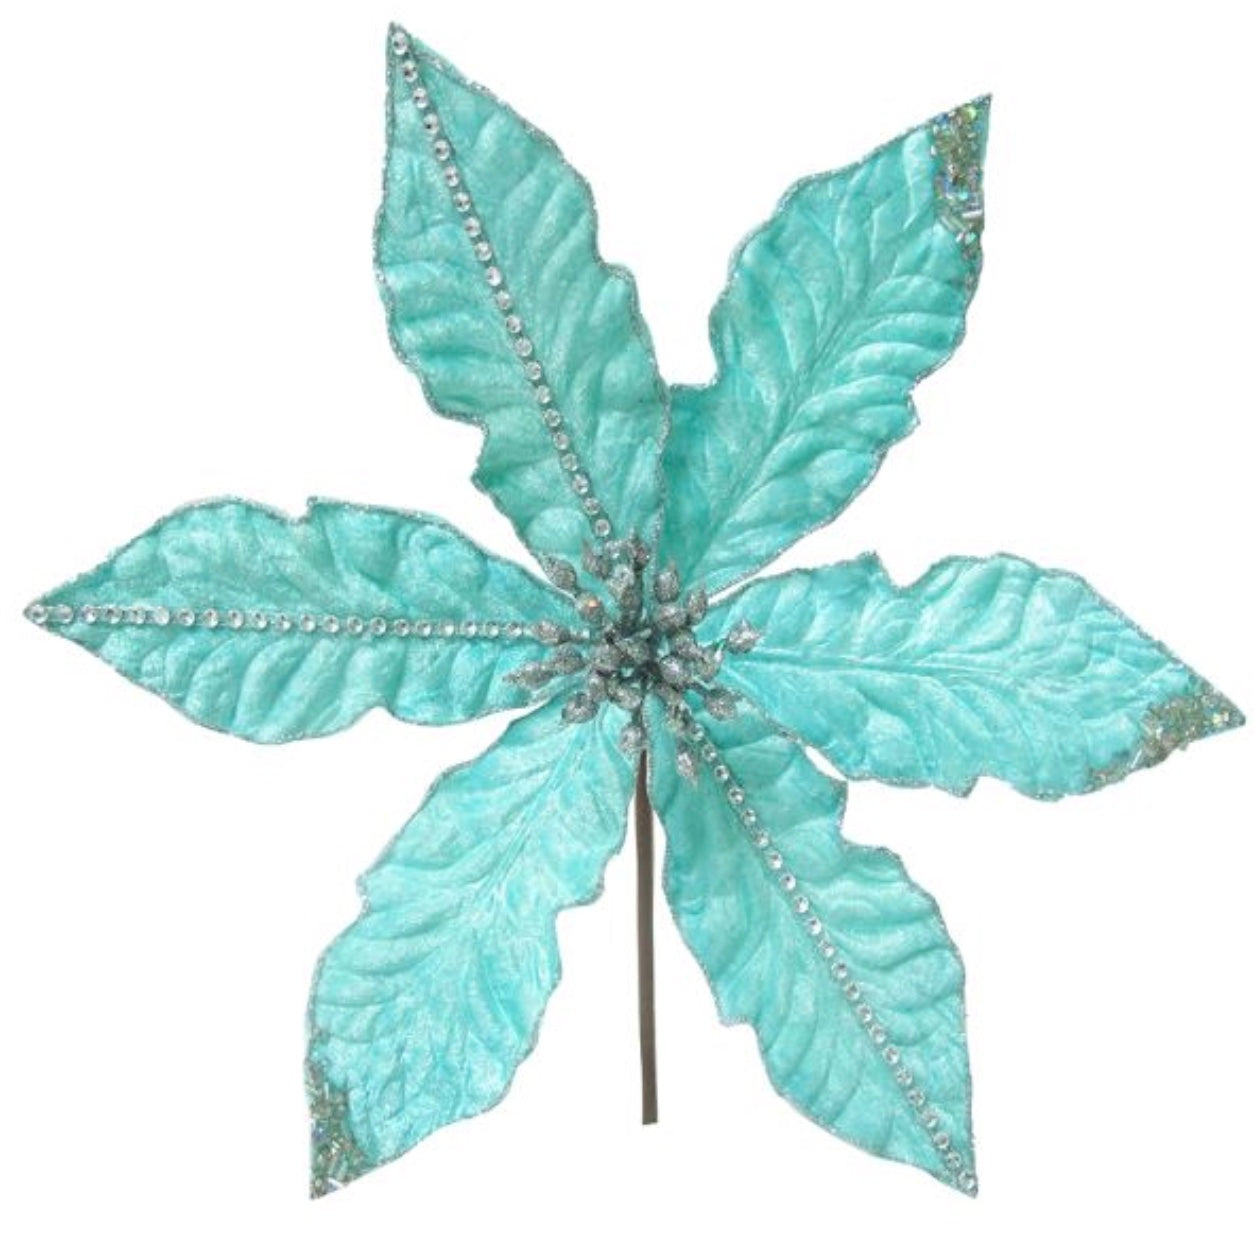 Kurt Adler Tiffany Blue with Rhinestones Poinsettia Pick | Putti Christmas